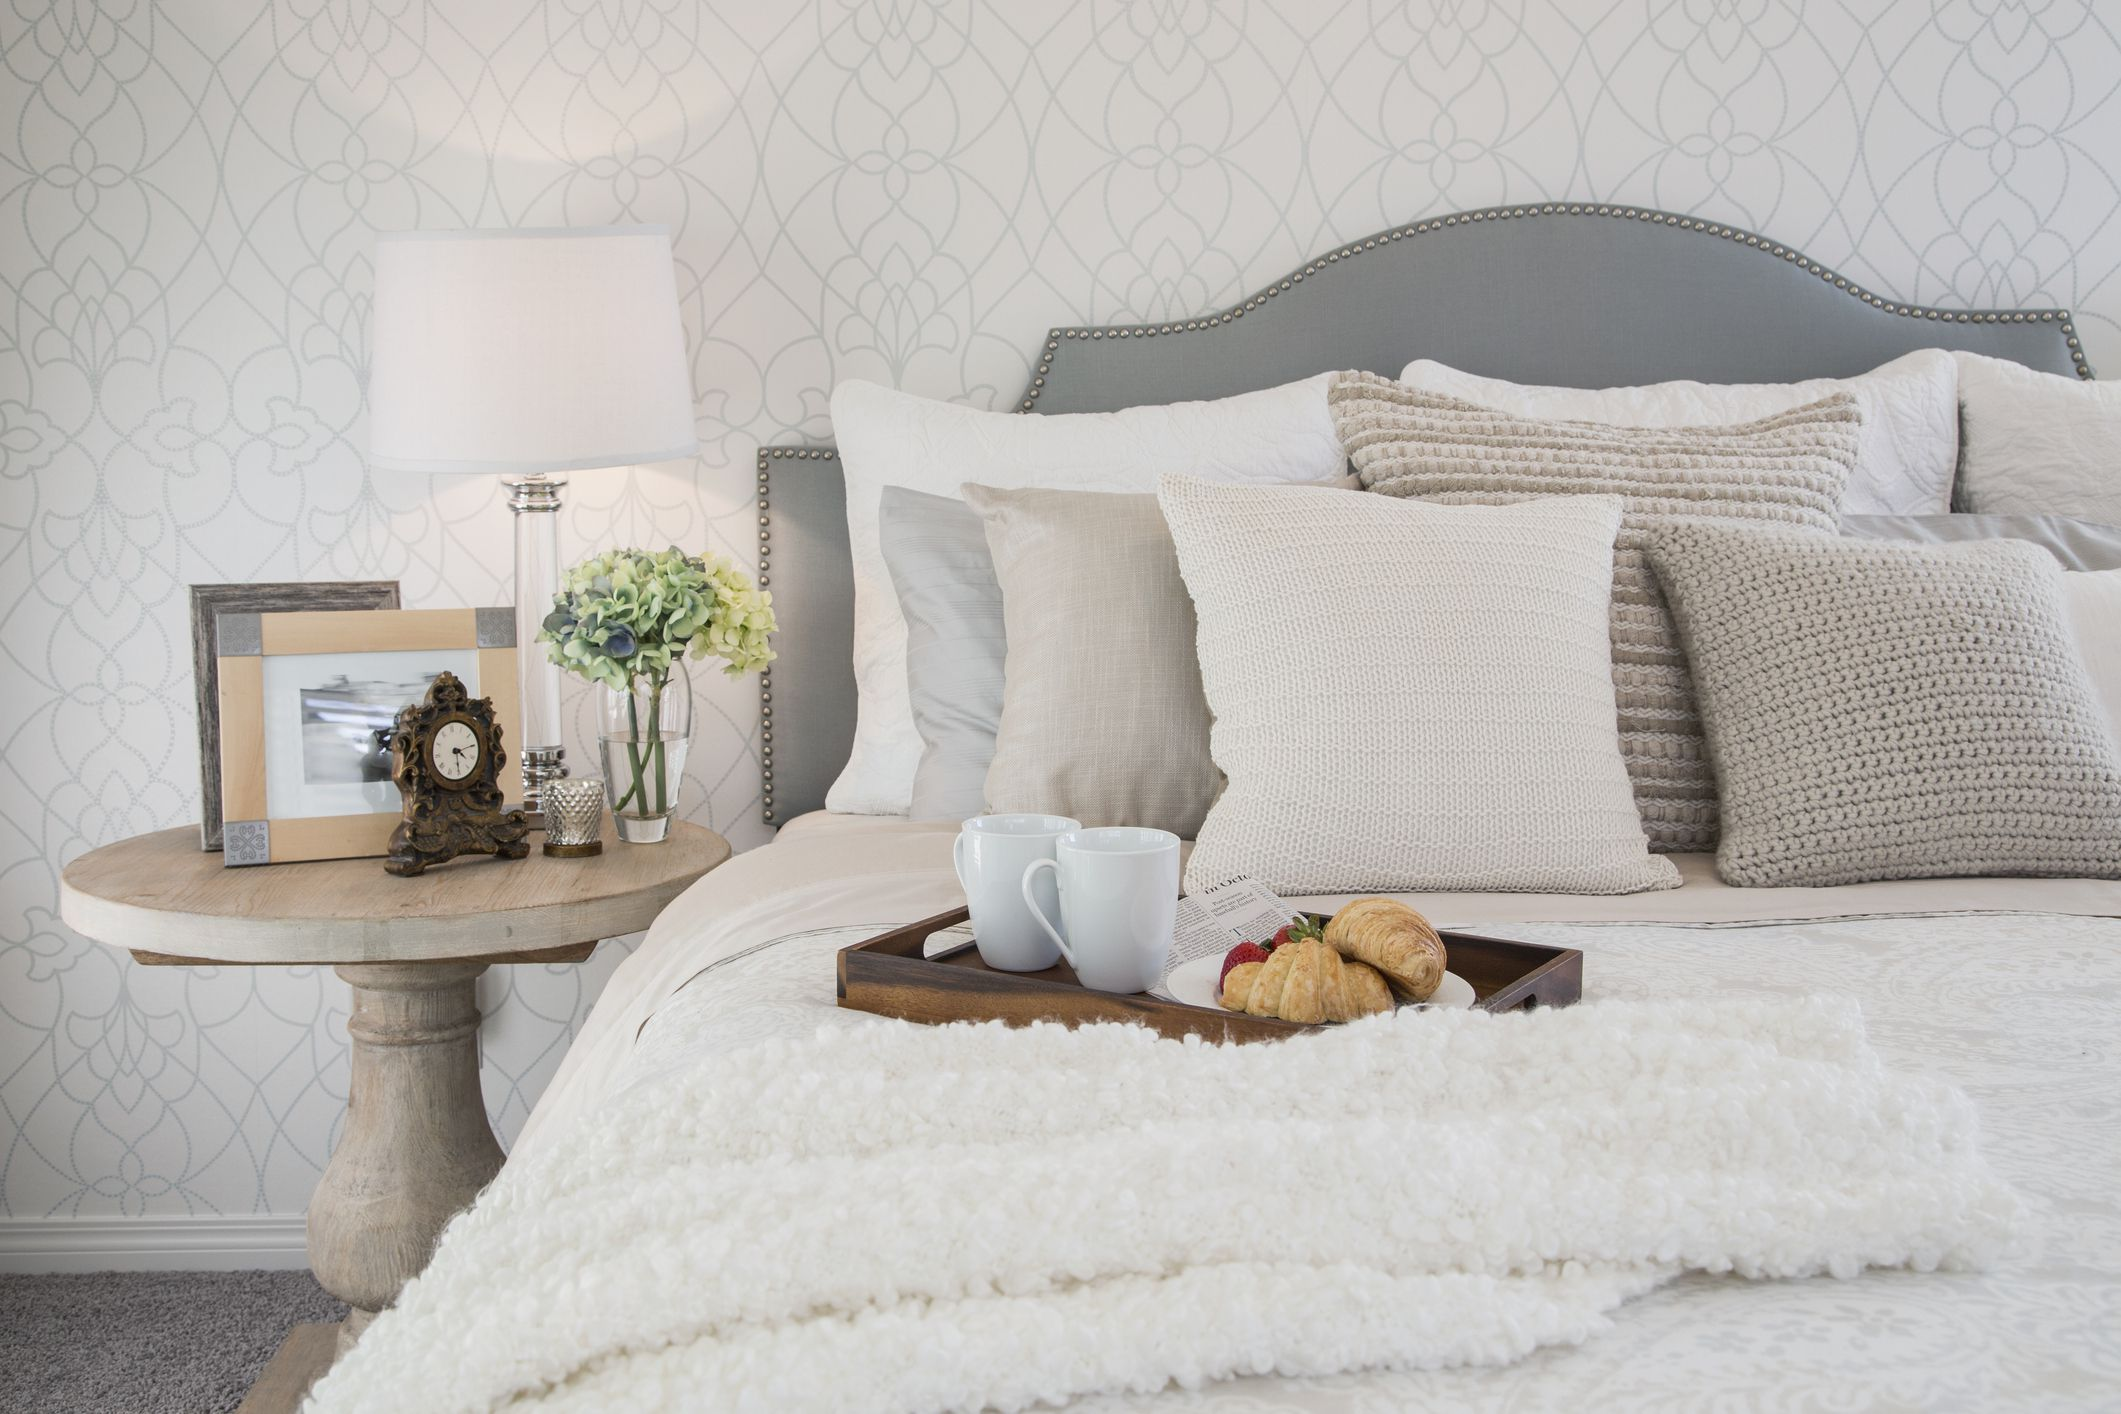 How To Organize A Nightstand